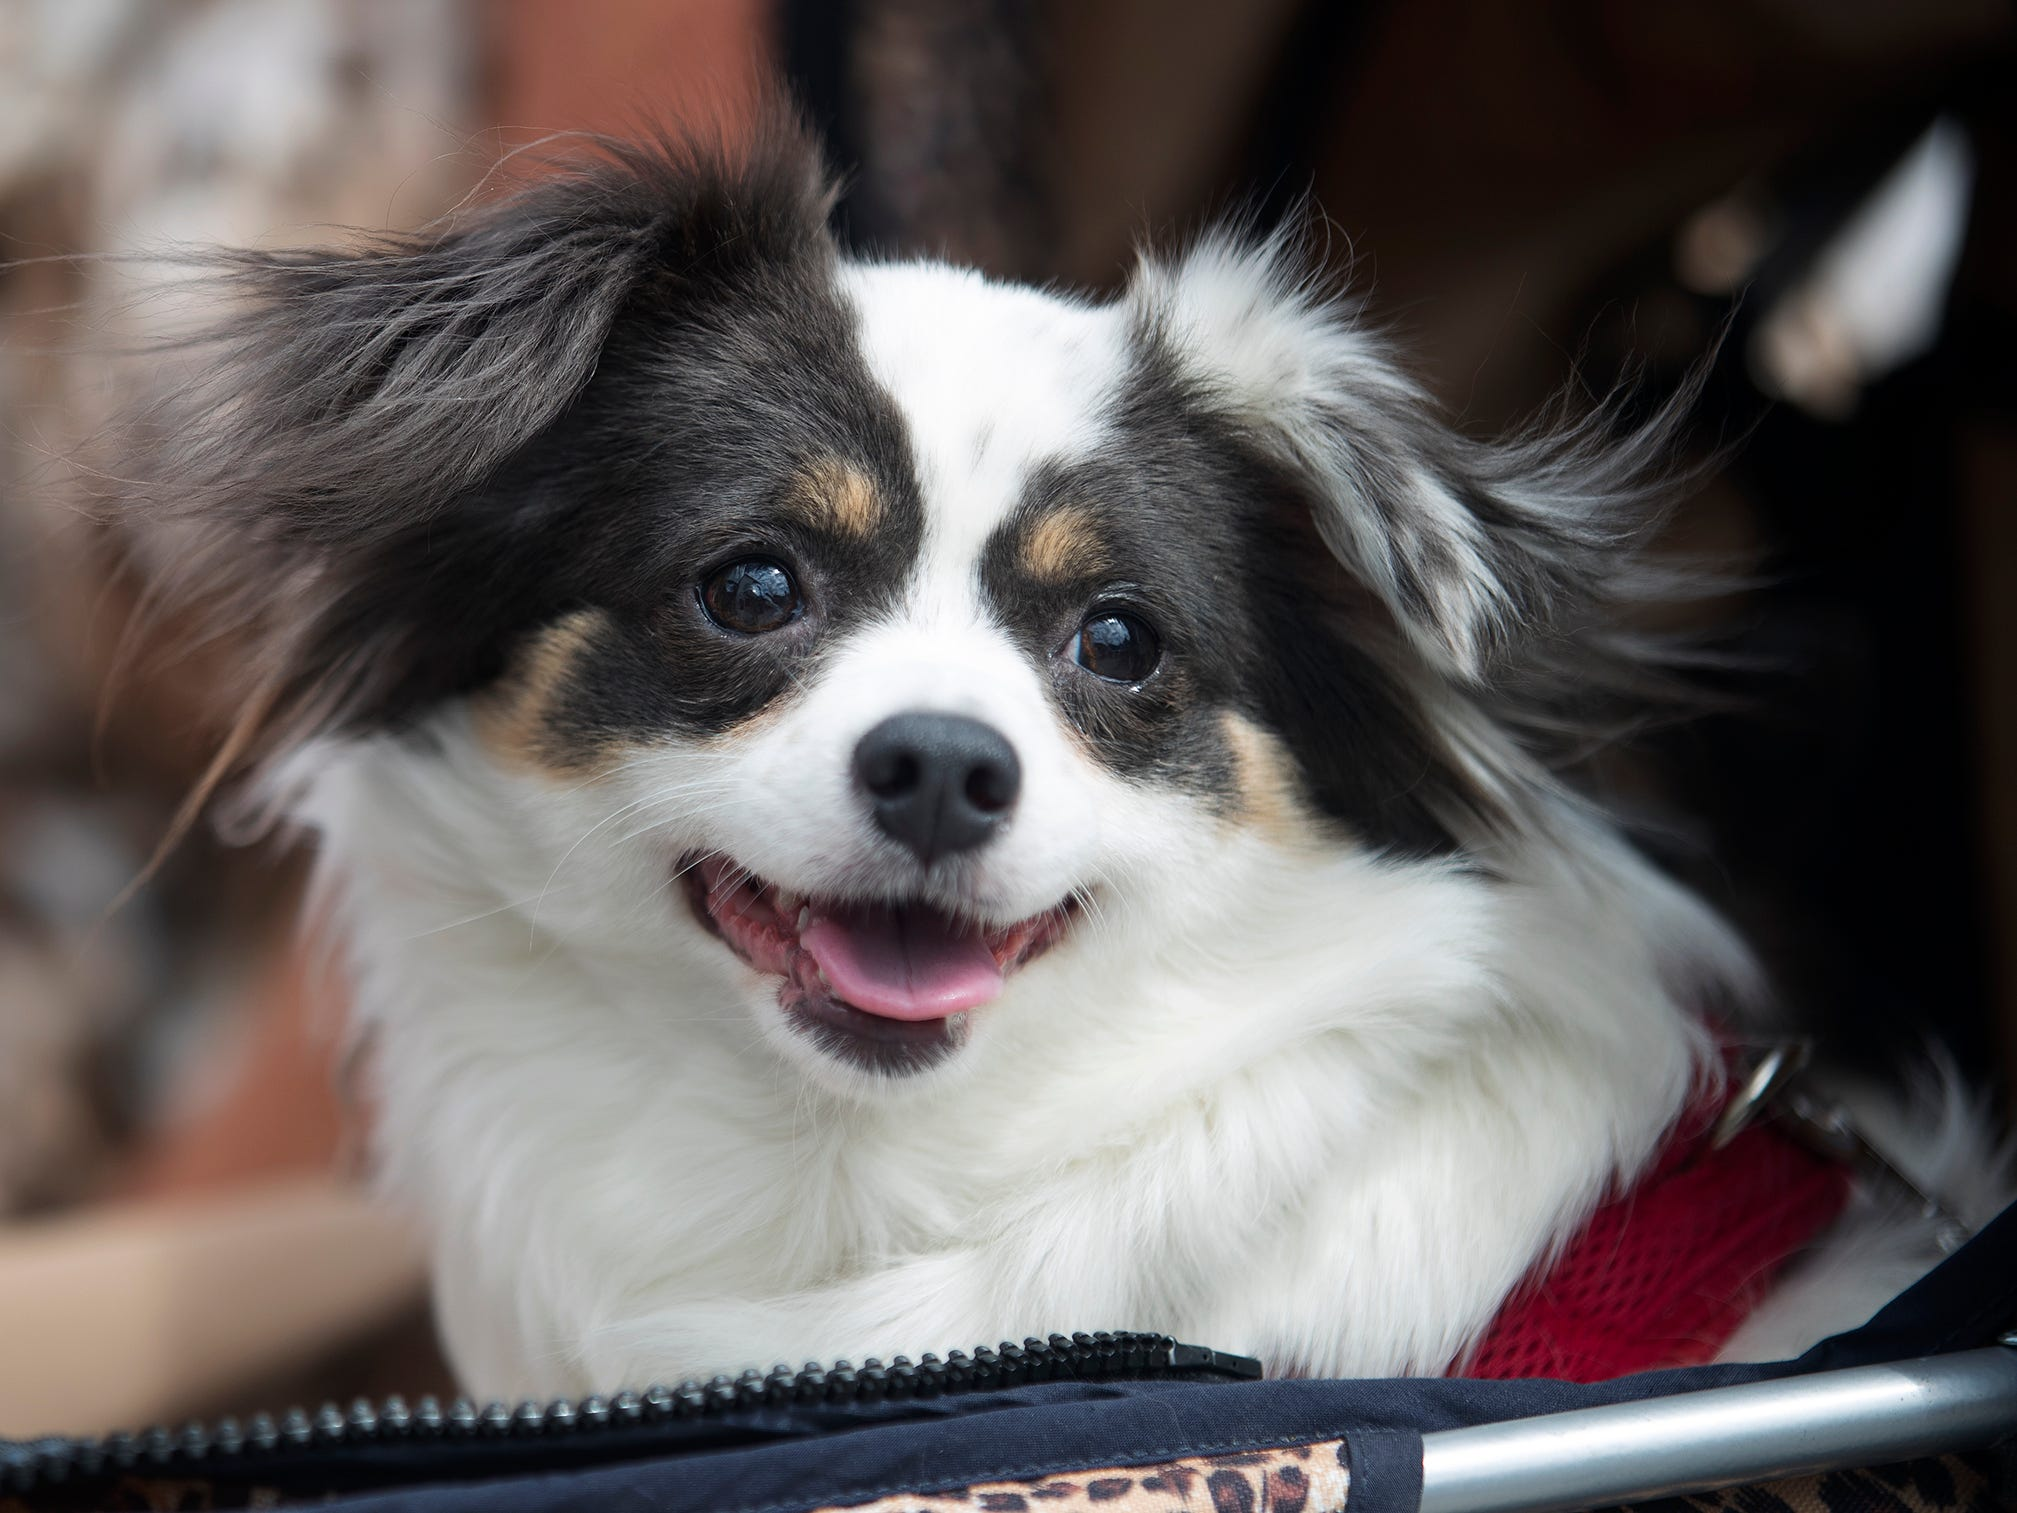 More than 50 dogs and their owners attend the Deputy Dogs event on Saturday at the Bell Tower Shops in south Fort Myers. The Lee County Sheriff's Office encouraged residents to be an extra set of eyes for LCSO while walking their dogs.